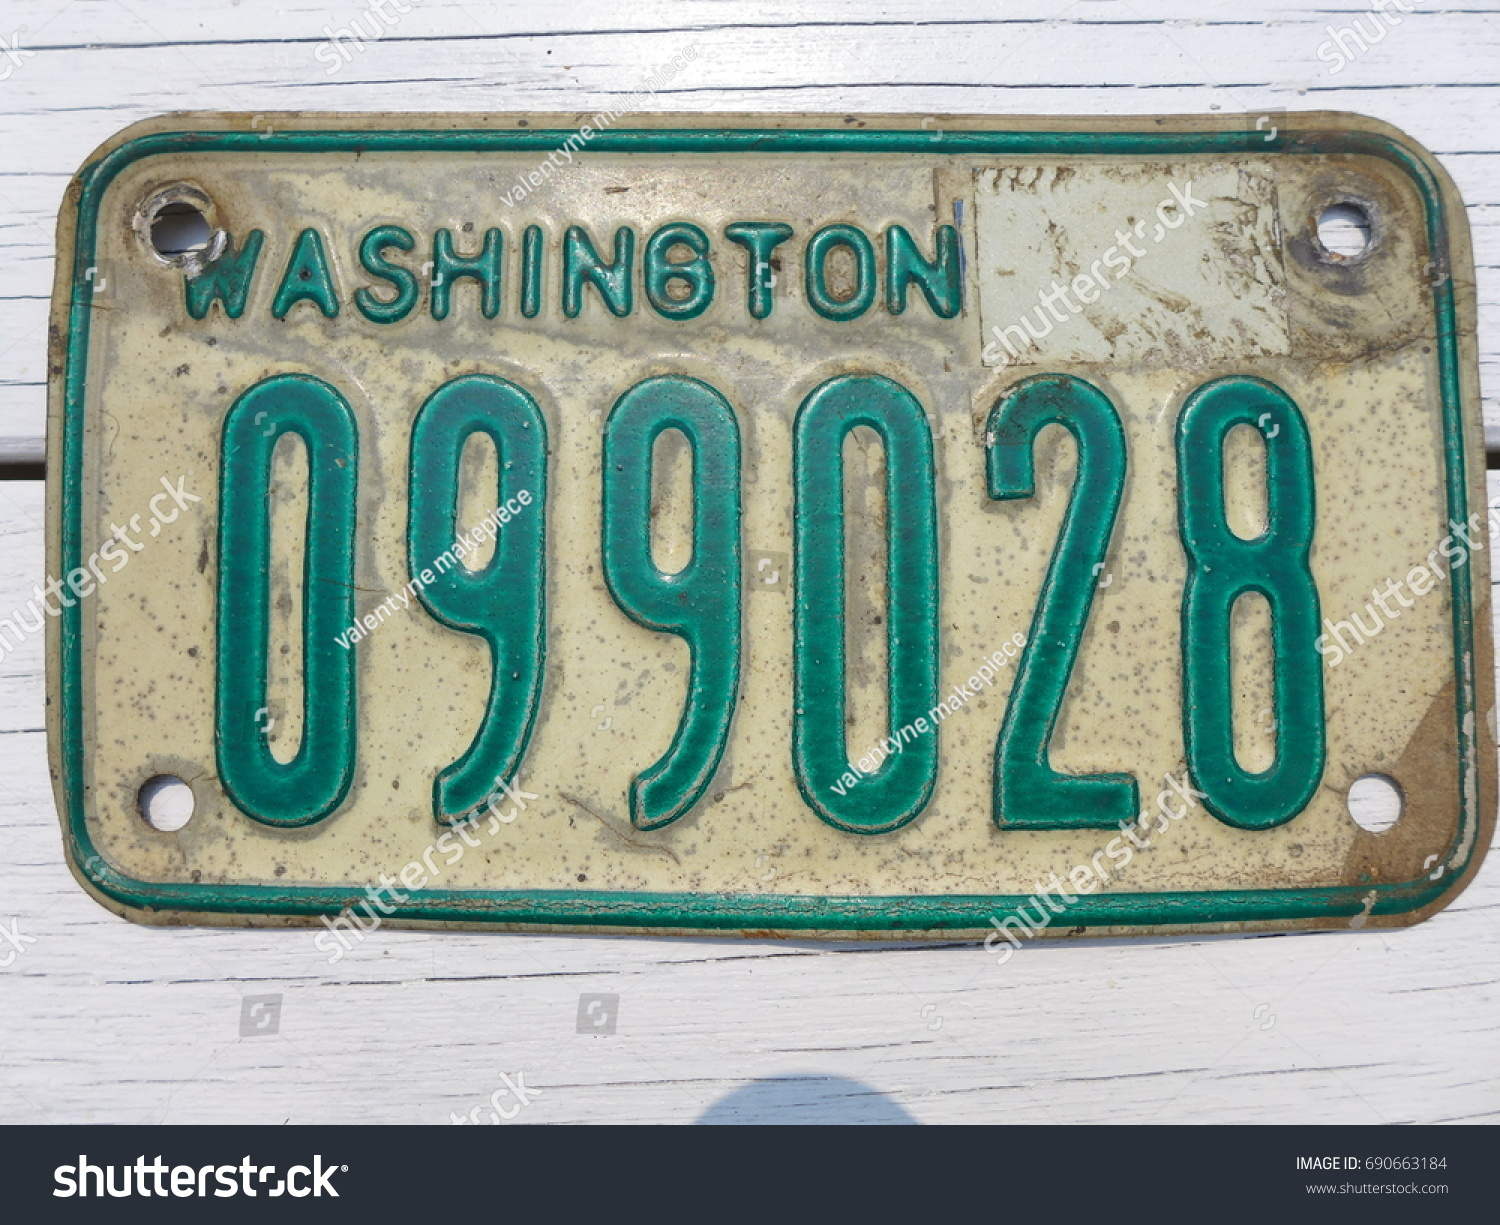 Washington State Vintage Motorcycle License Plate Stock Photo ...